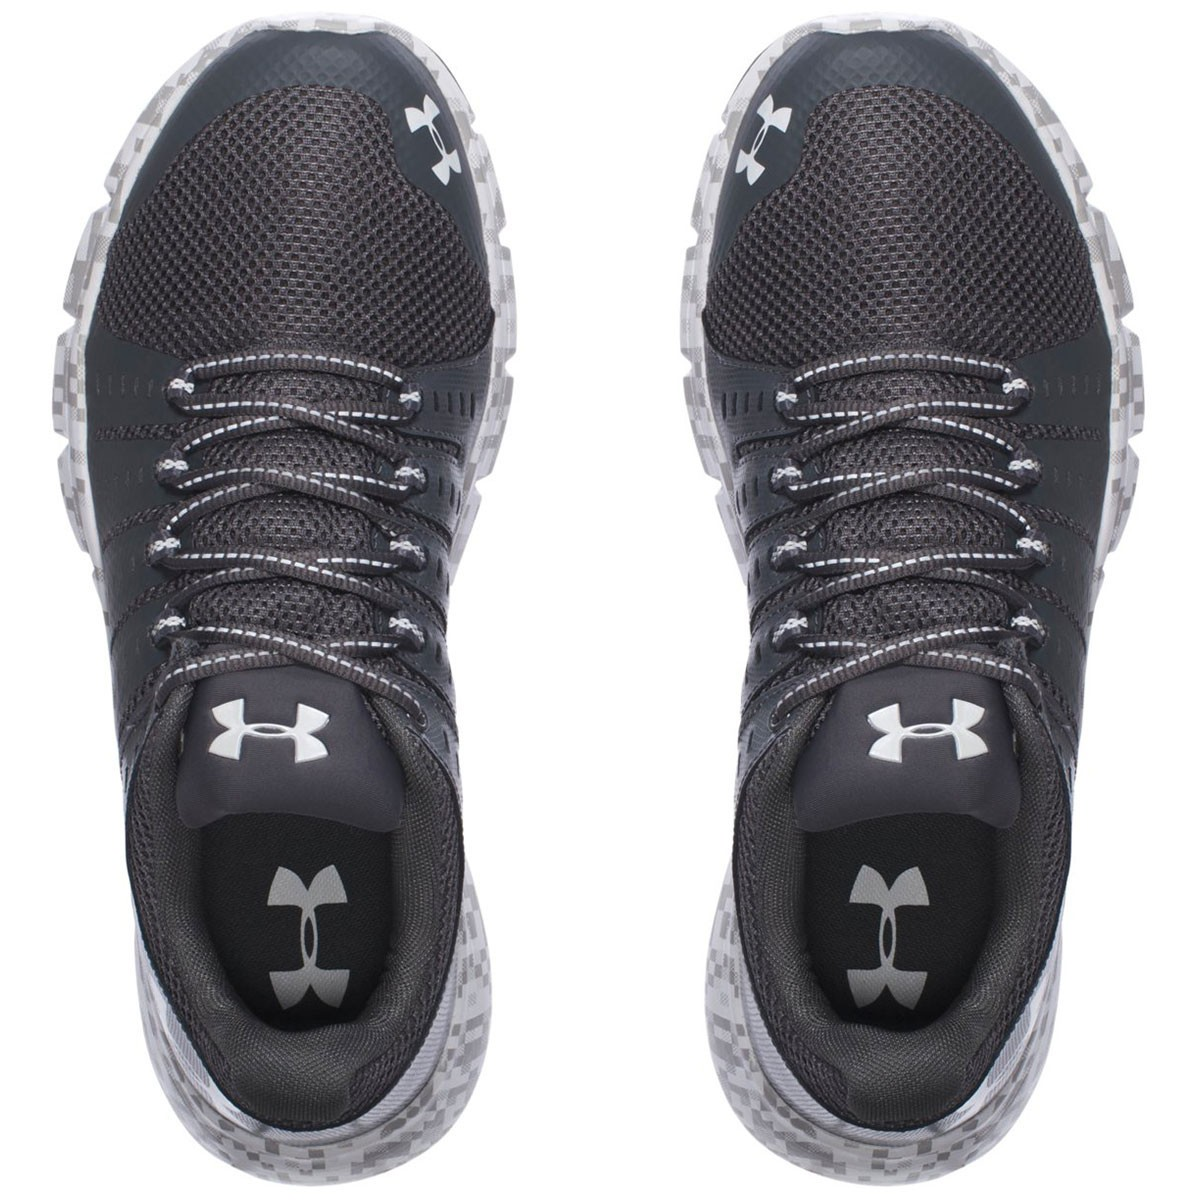 detailed look aca4b a749c Under Armour Mens UA Micro G Limitless TR 2 SE Trainers ...